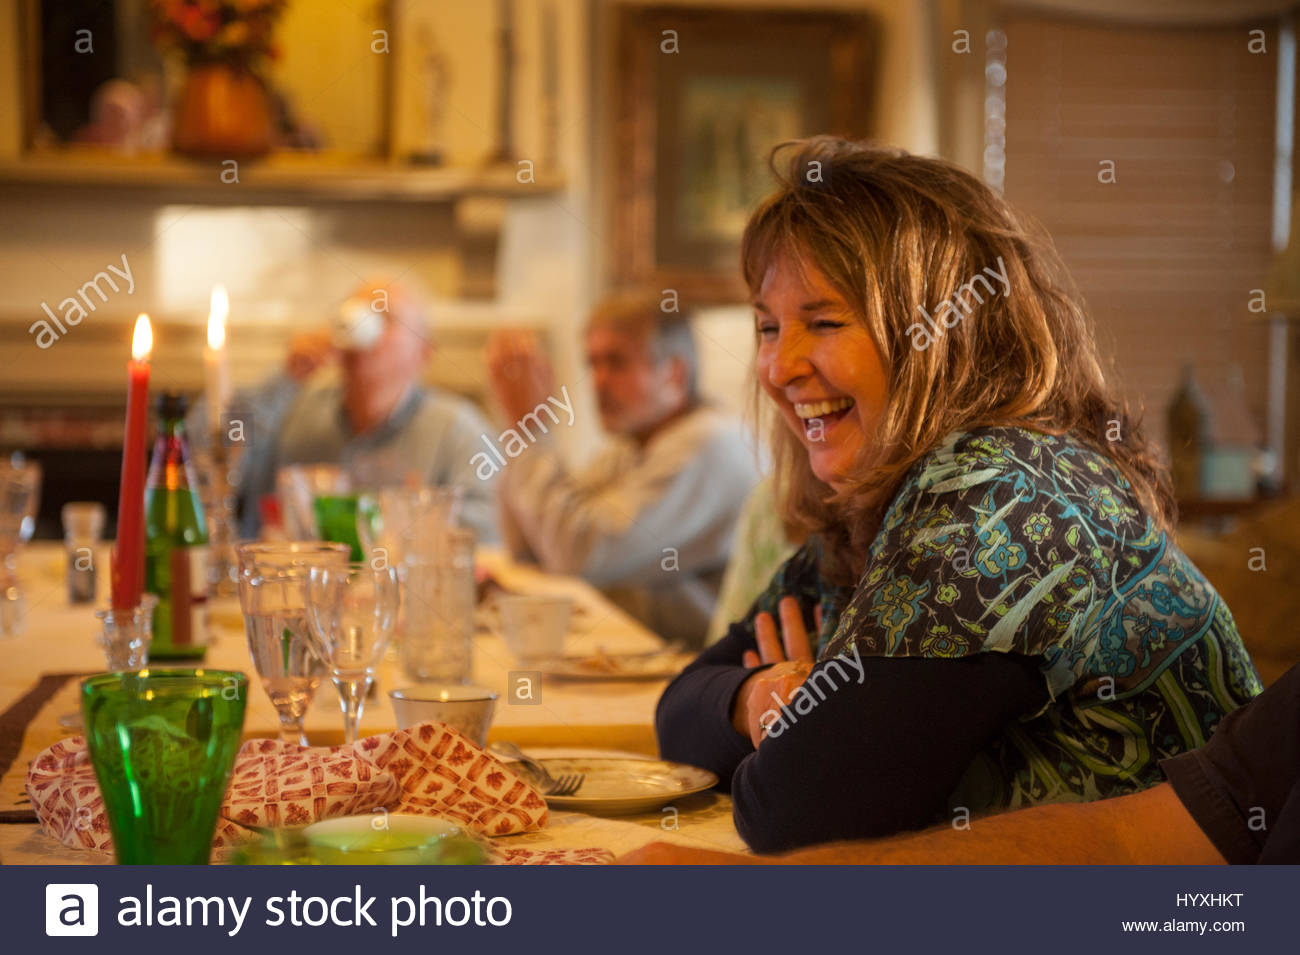 A family has a good time at their Thanksgiving meal. - Stock Image